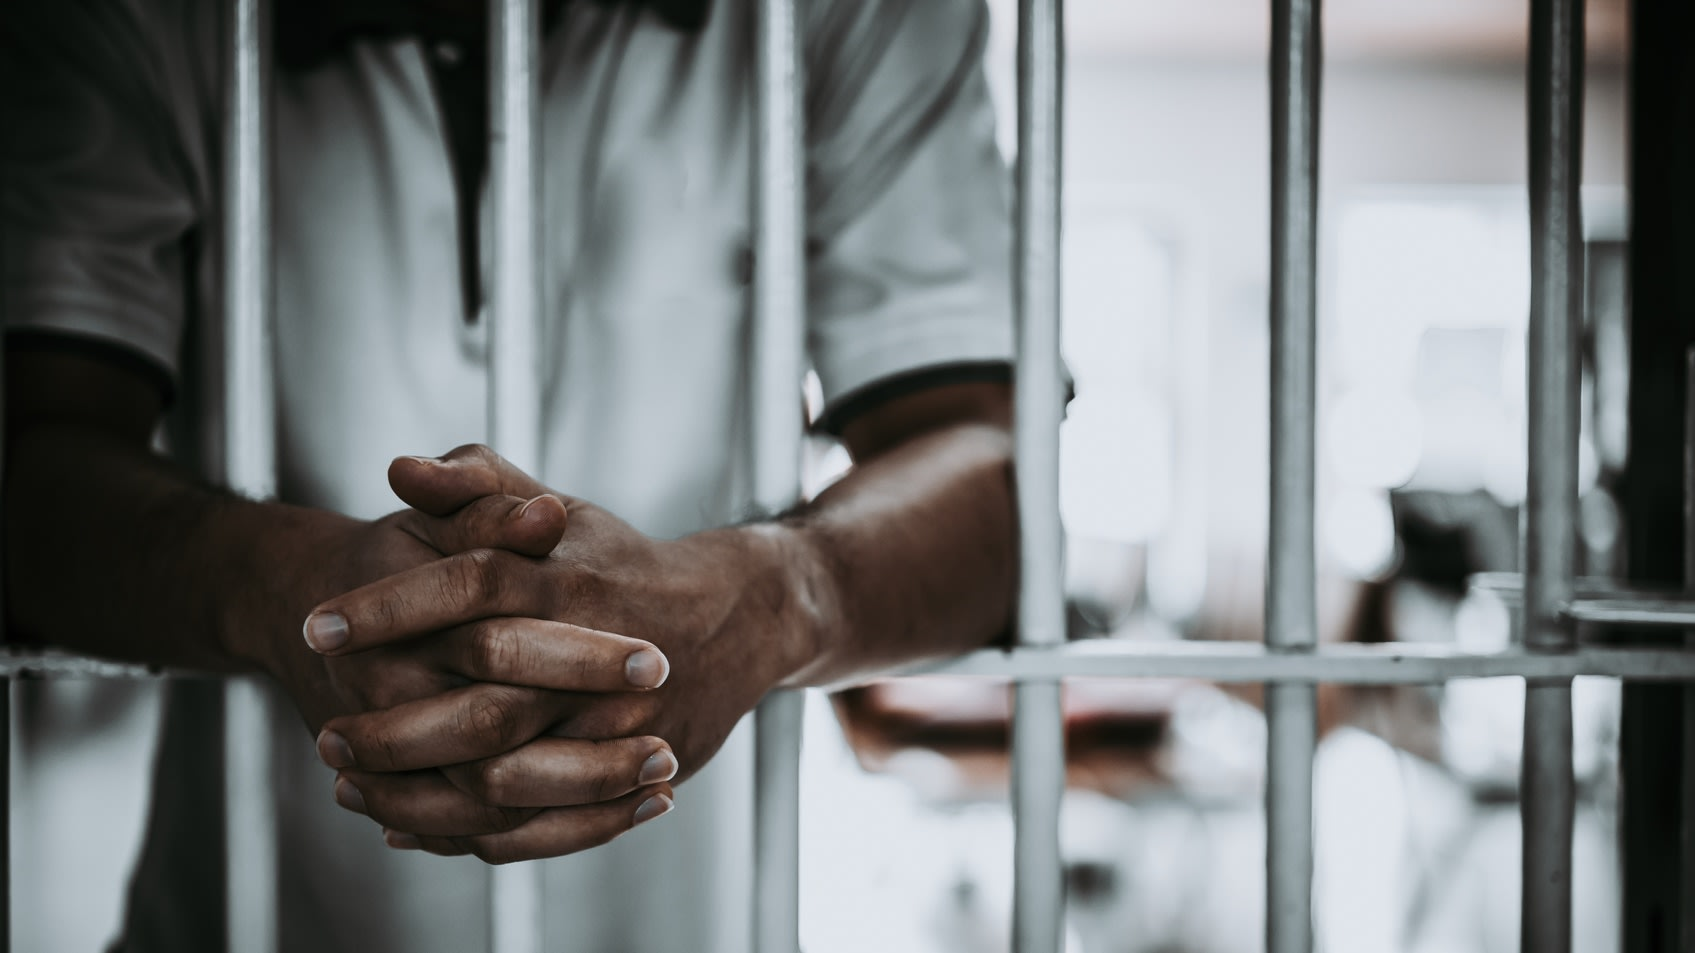 Hundreds Of Black Incarcerated People Sent Home Due To COVID-19 Could Return To Prison Once Pandemic Ends